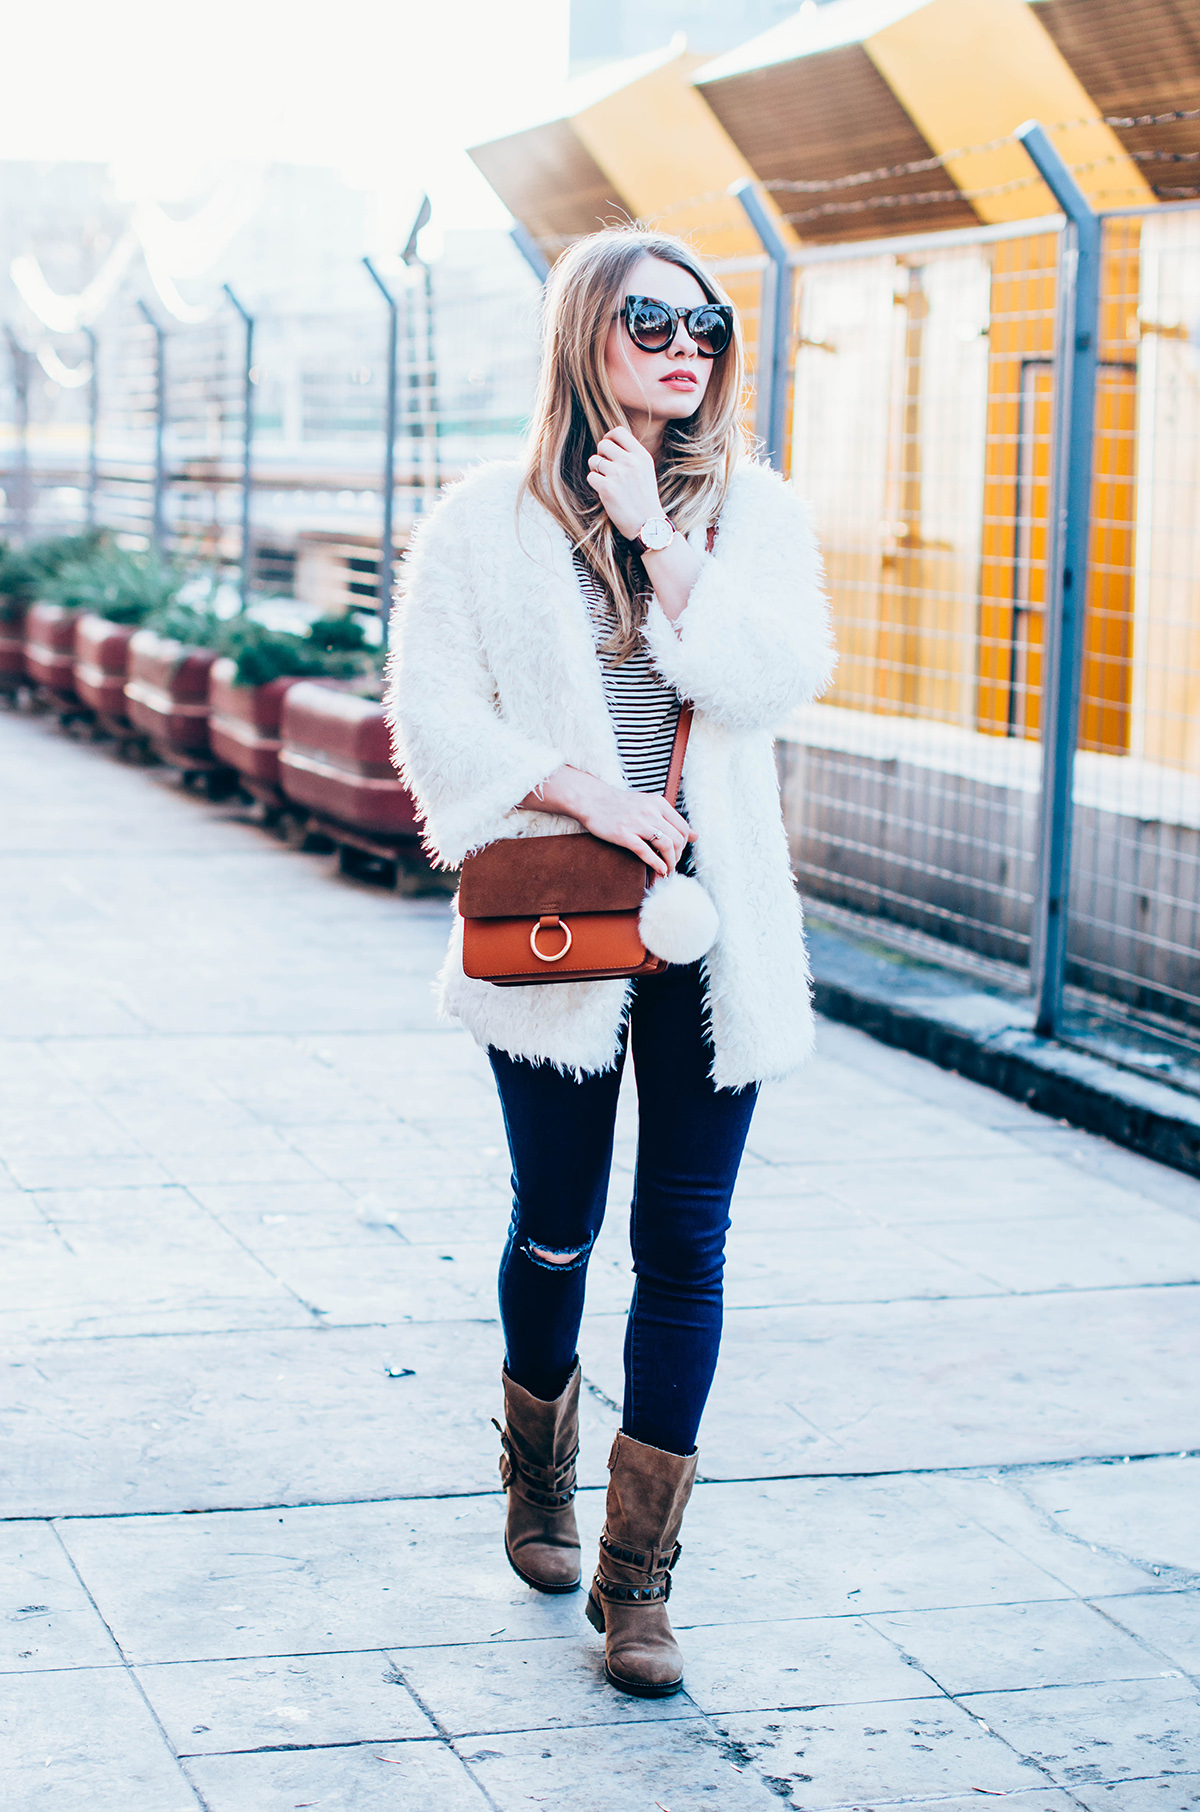 white-fluffy-cardgan-ripped-skinny-jeans-suede-boots-camel-scarf-fluffy-keyrng-cat-eye-sunglasses (9)